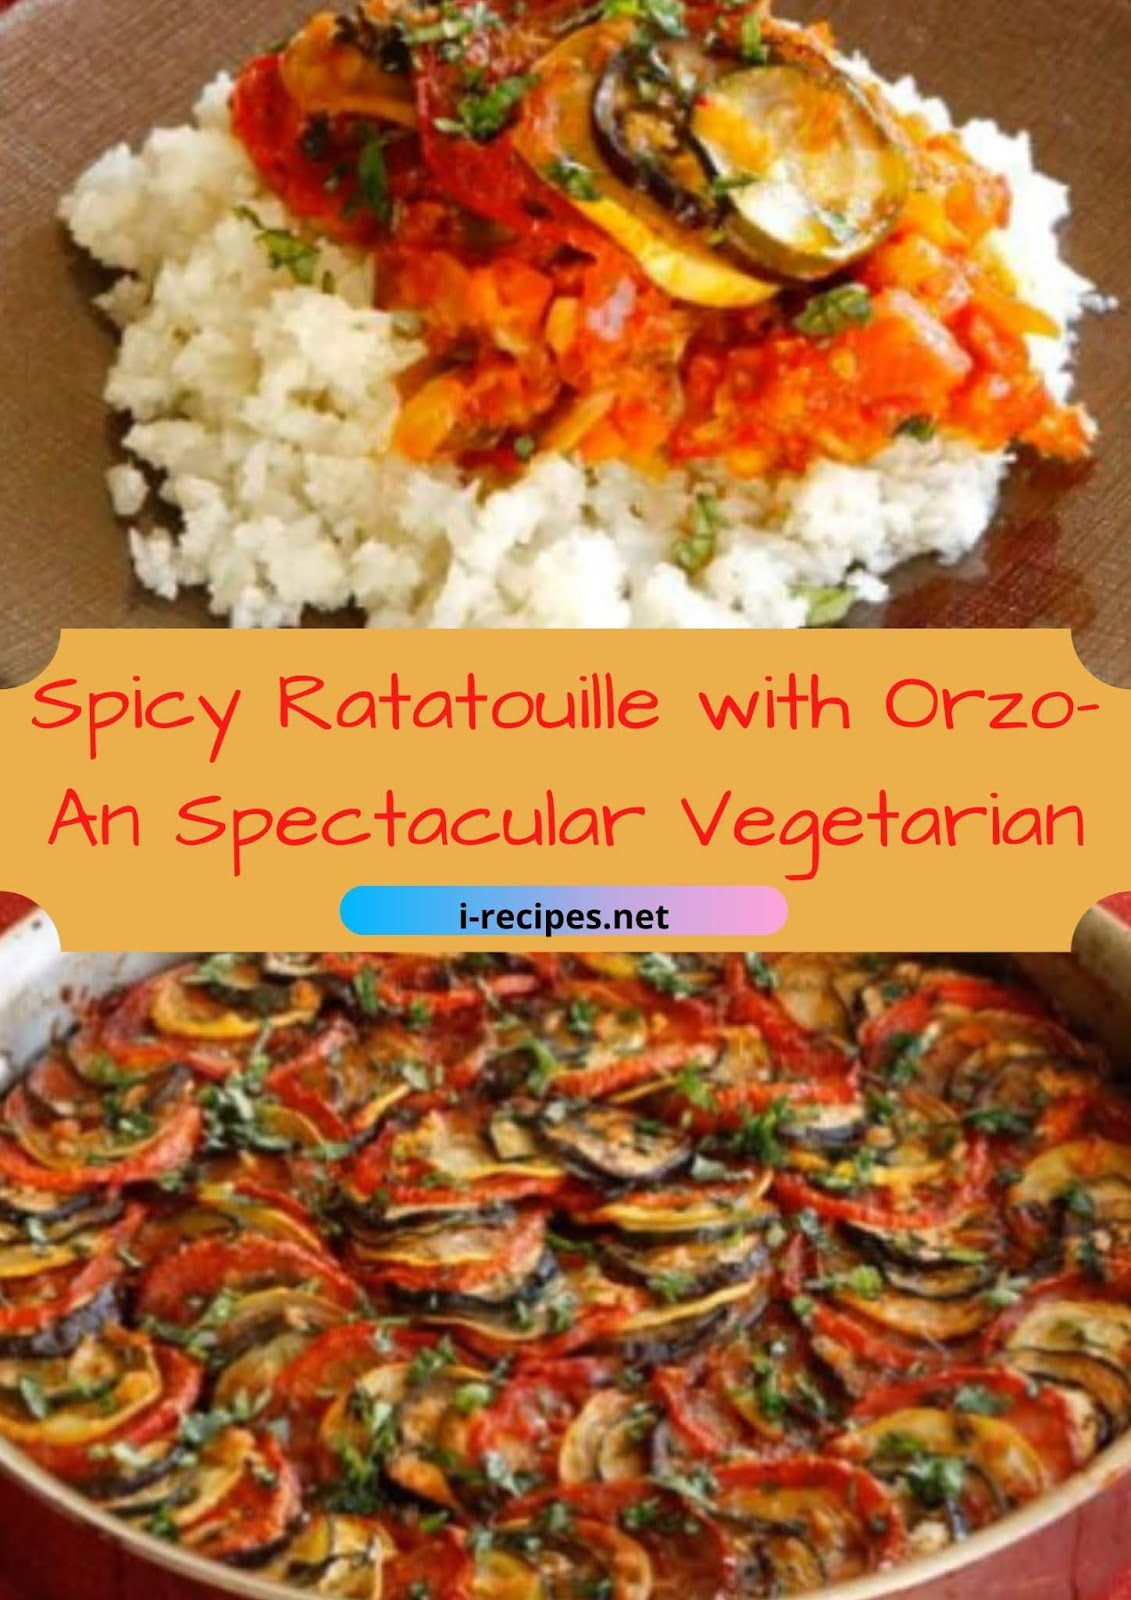 Spicy Ratatouille with Orzo-An Spectacular Vegetarian